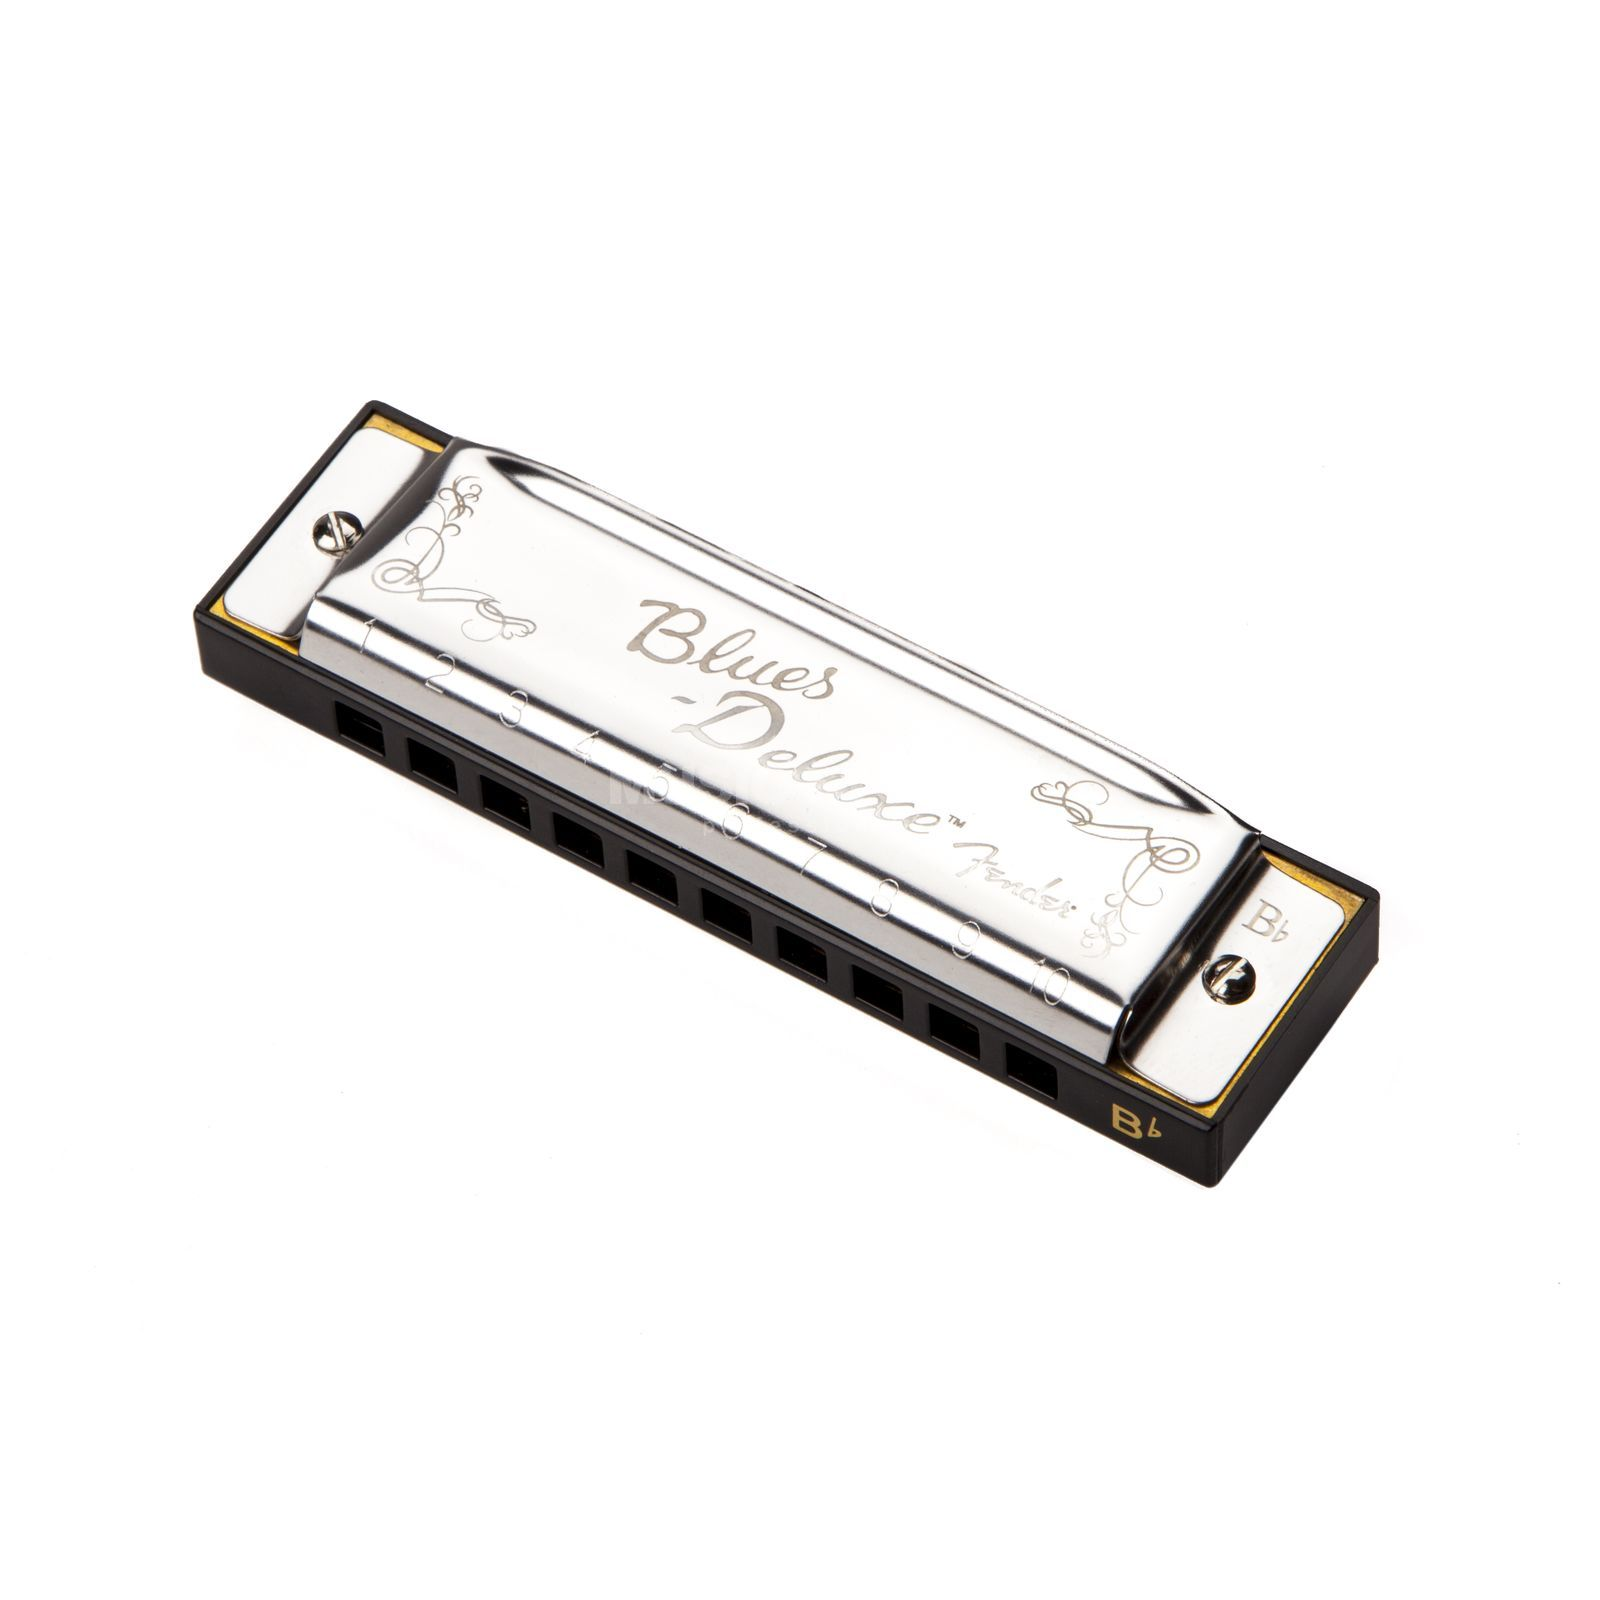 Fender Blues Deluxe Harmonica Key of B Flat Produktbild